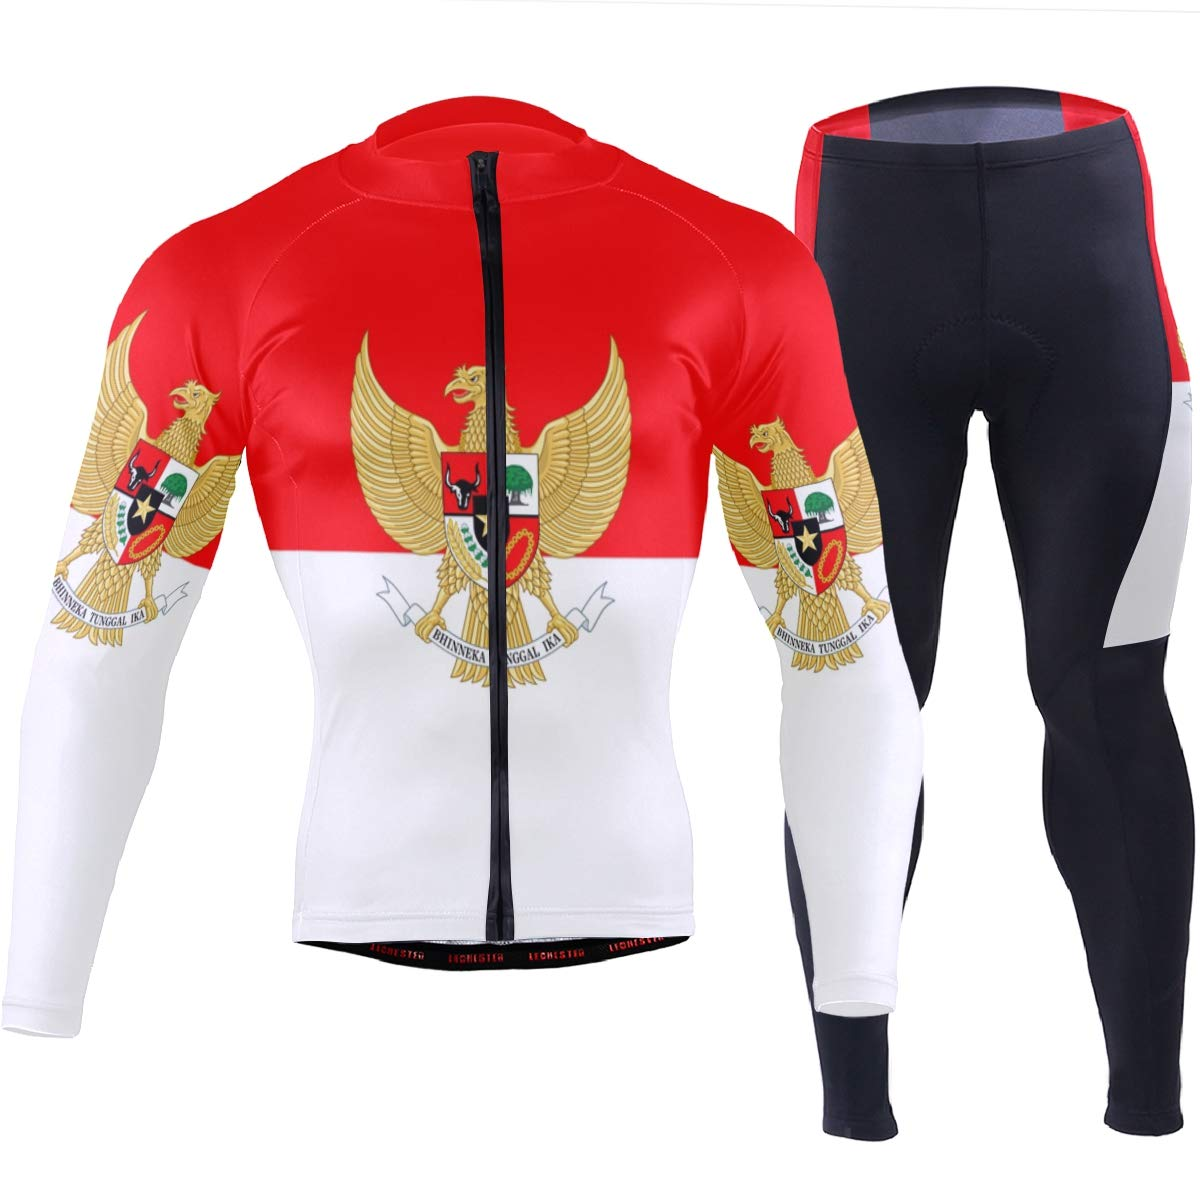 Men's Cycling Jersey Long Sleeve with 3 Rear Pockets Suit Indonesia Flag National Emblem by CHINEIN